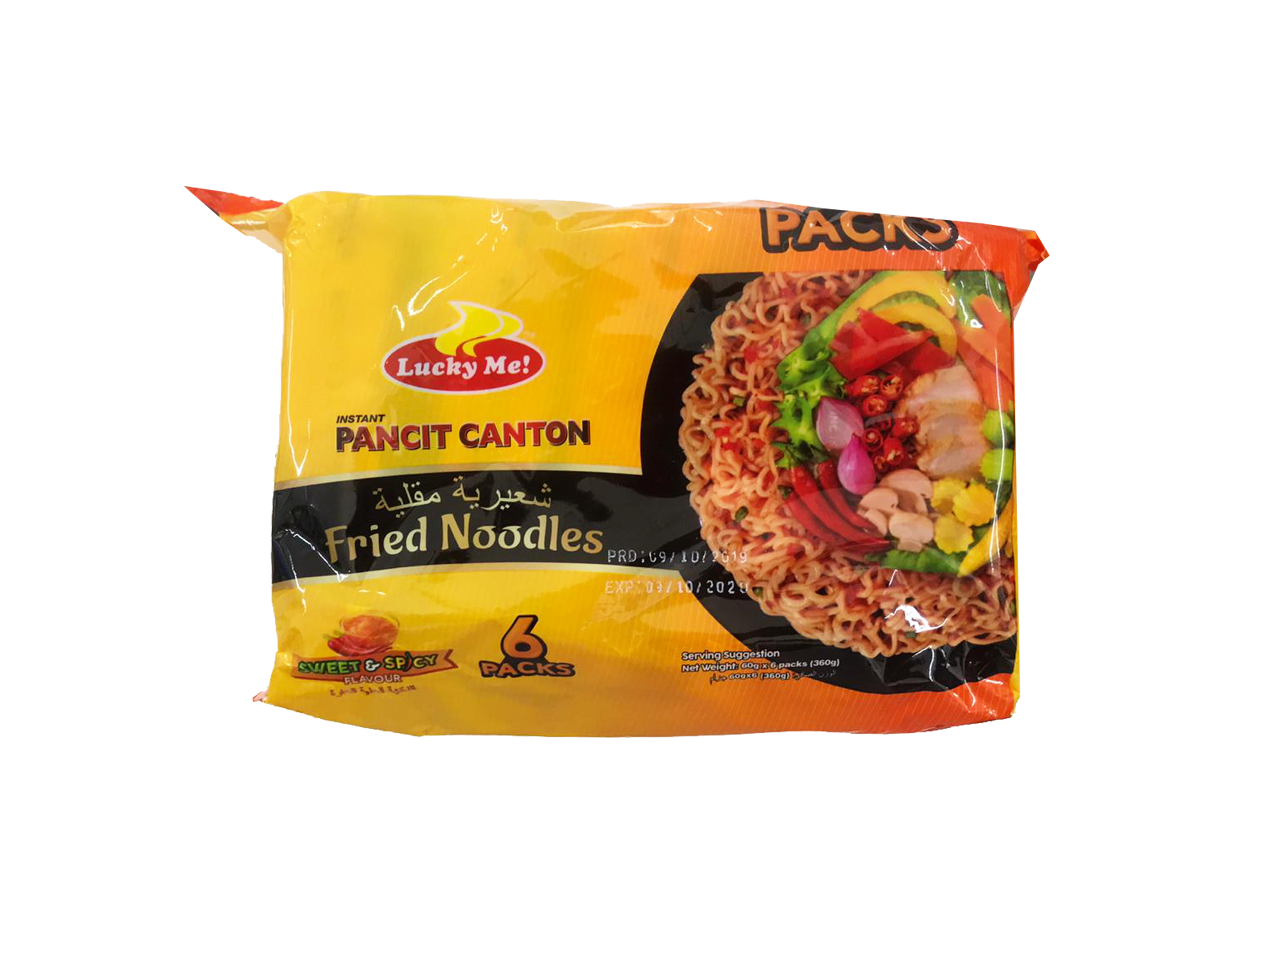 Lucky Me Instant Pancit Canton Sweet&Spicy 1 Pack (6pcs)